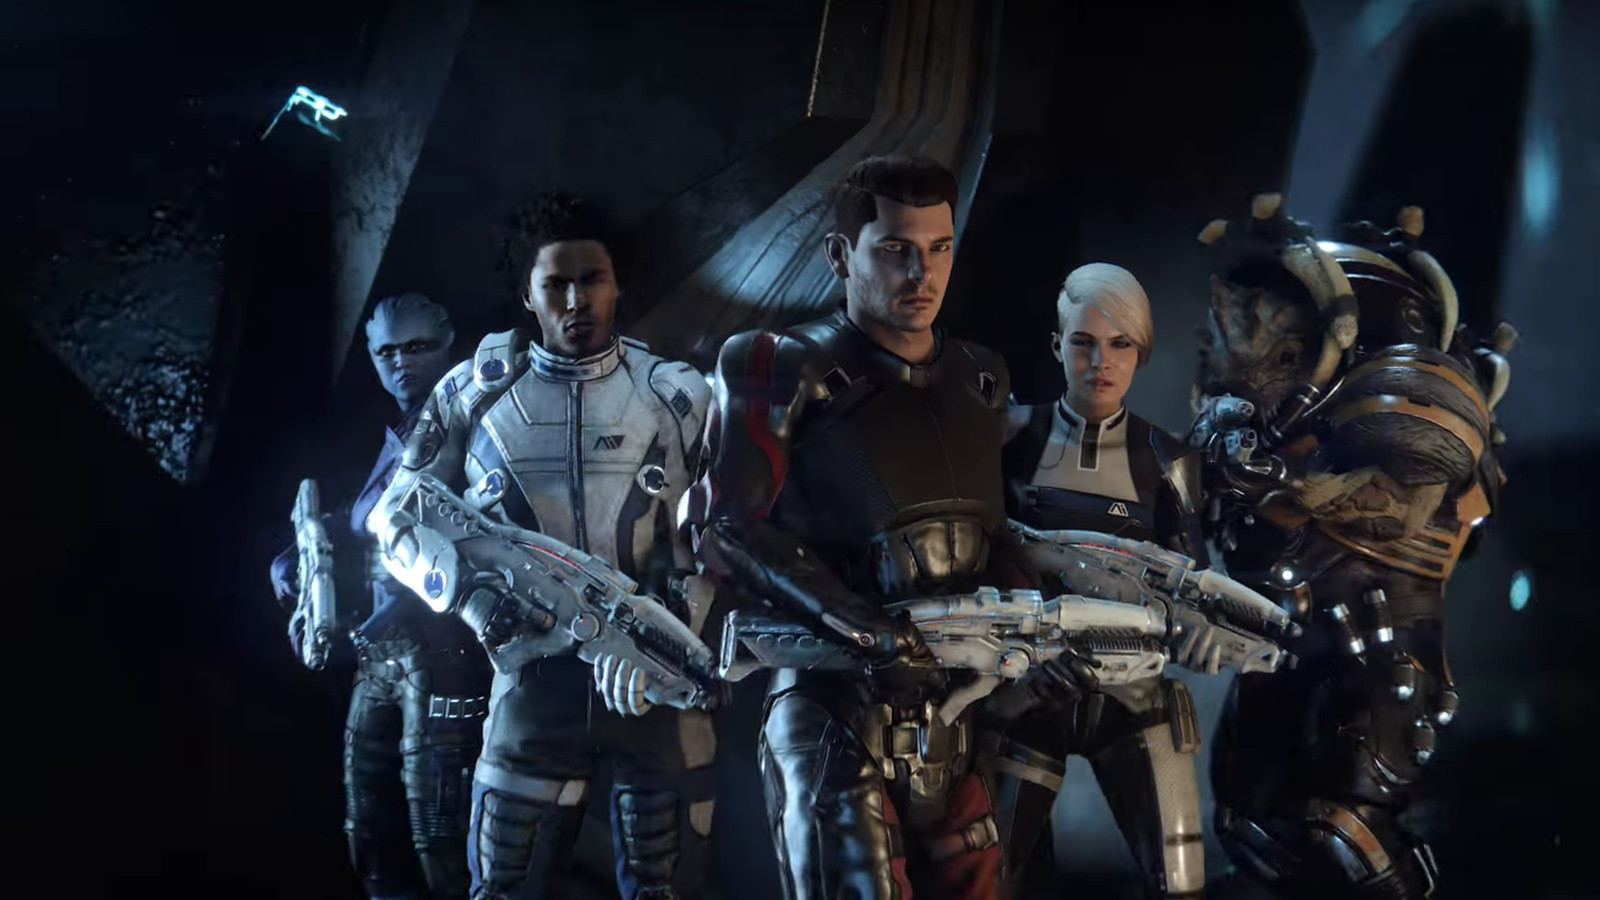 Mass Effect: Andromeda pirates won't get the game's new faces